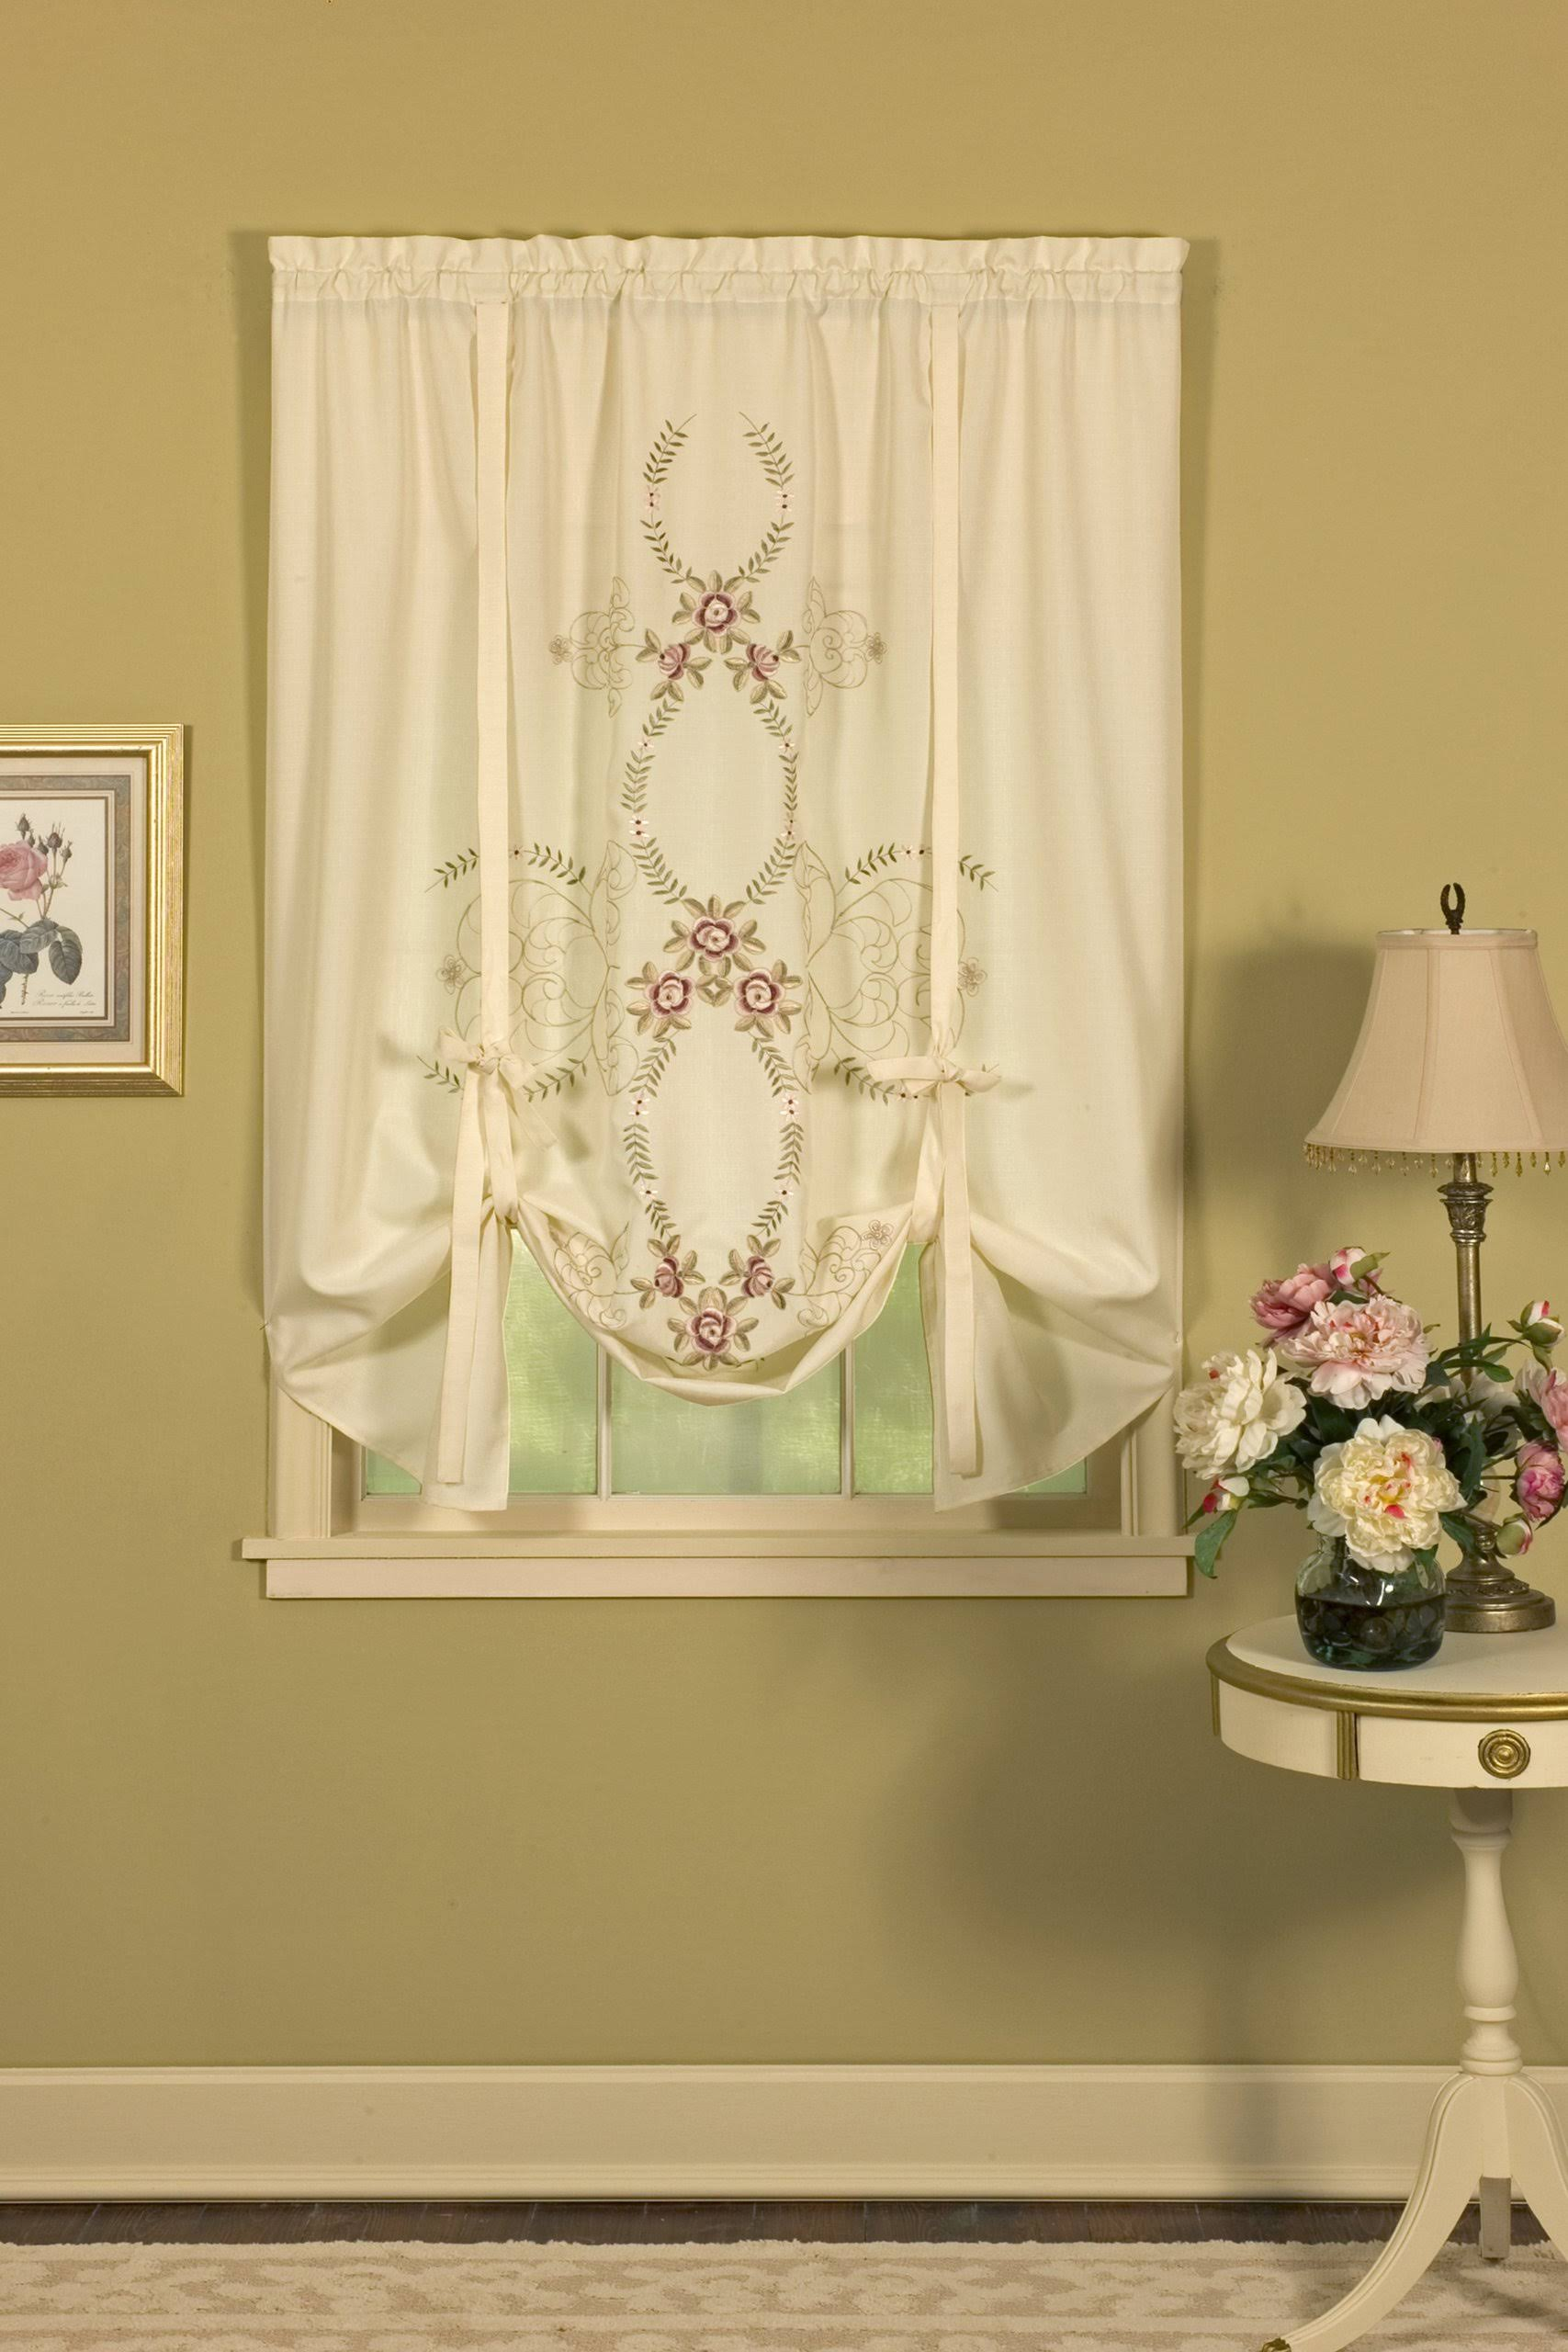 "Today's Curtain Verona 63"" Tie-Up Shade, Ecru Rose"